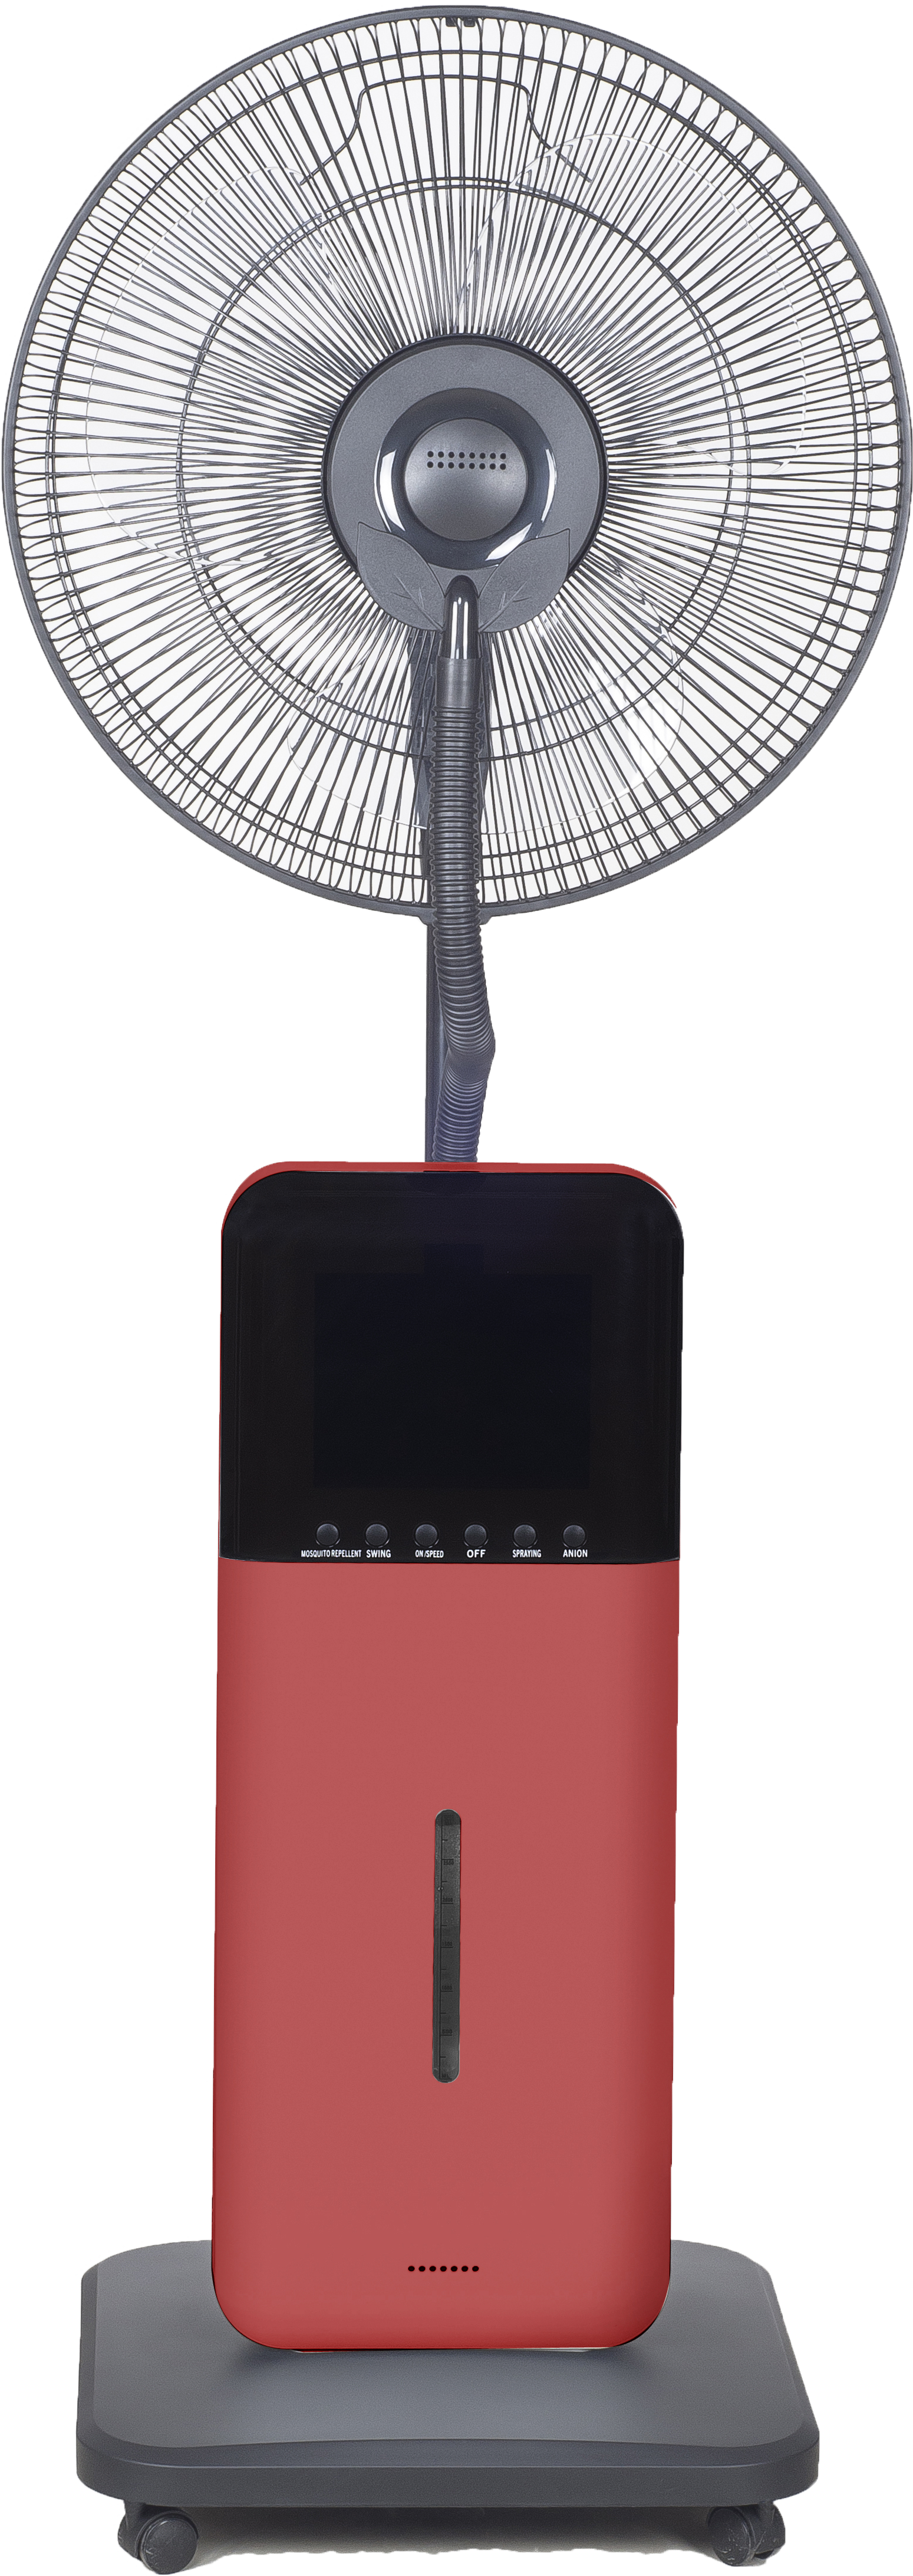 CoolZone by SUNHEAT CZ500 Ultrasonic Dry Misting Fan with Bluetooth Technology